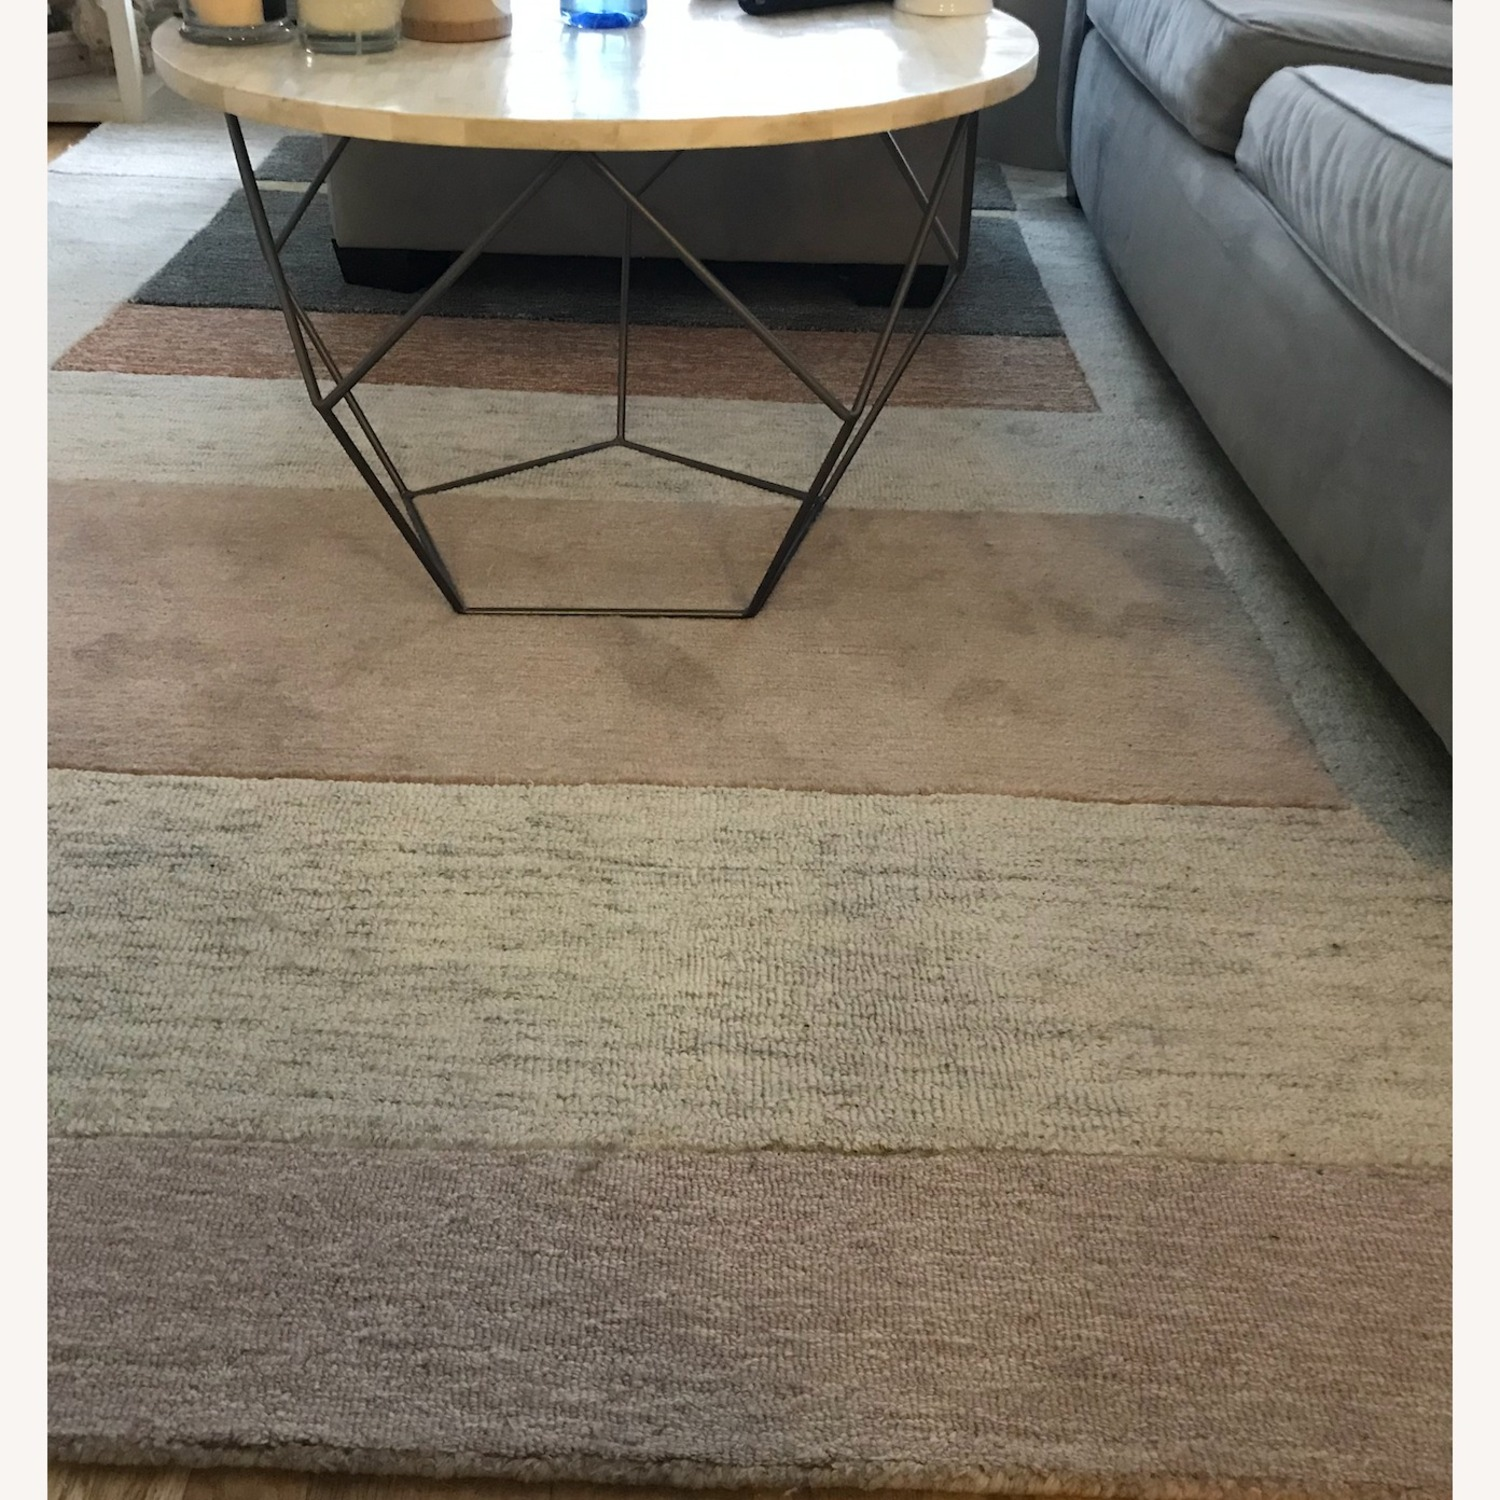 West Elm Capstone Rug in Dusty Blush - image-1